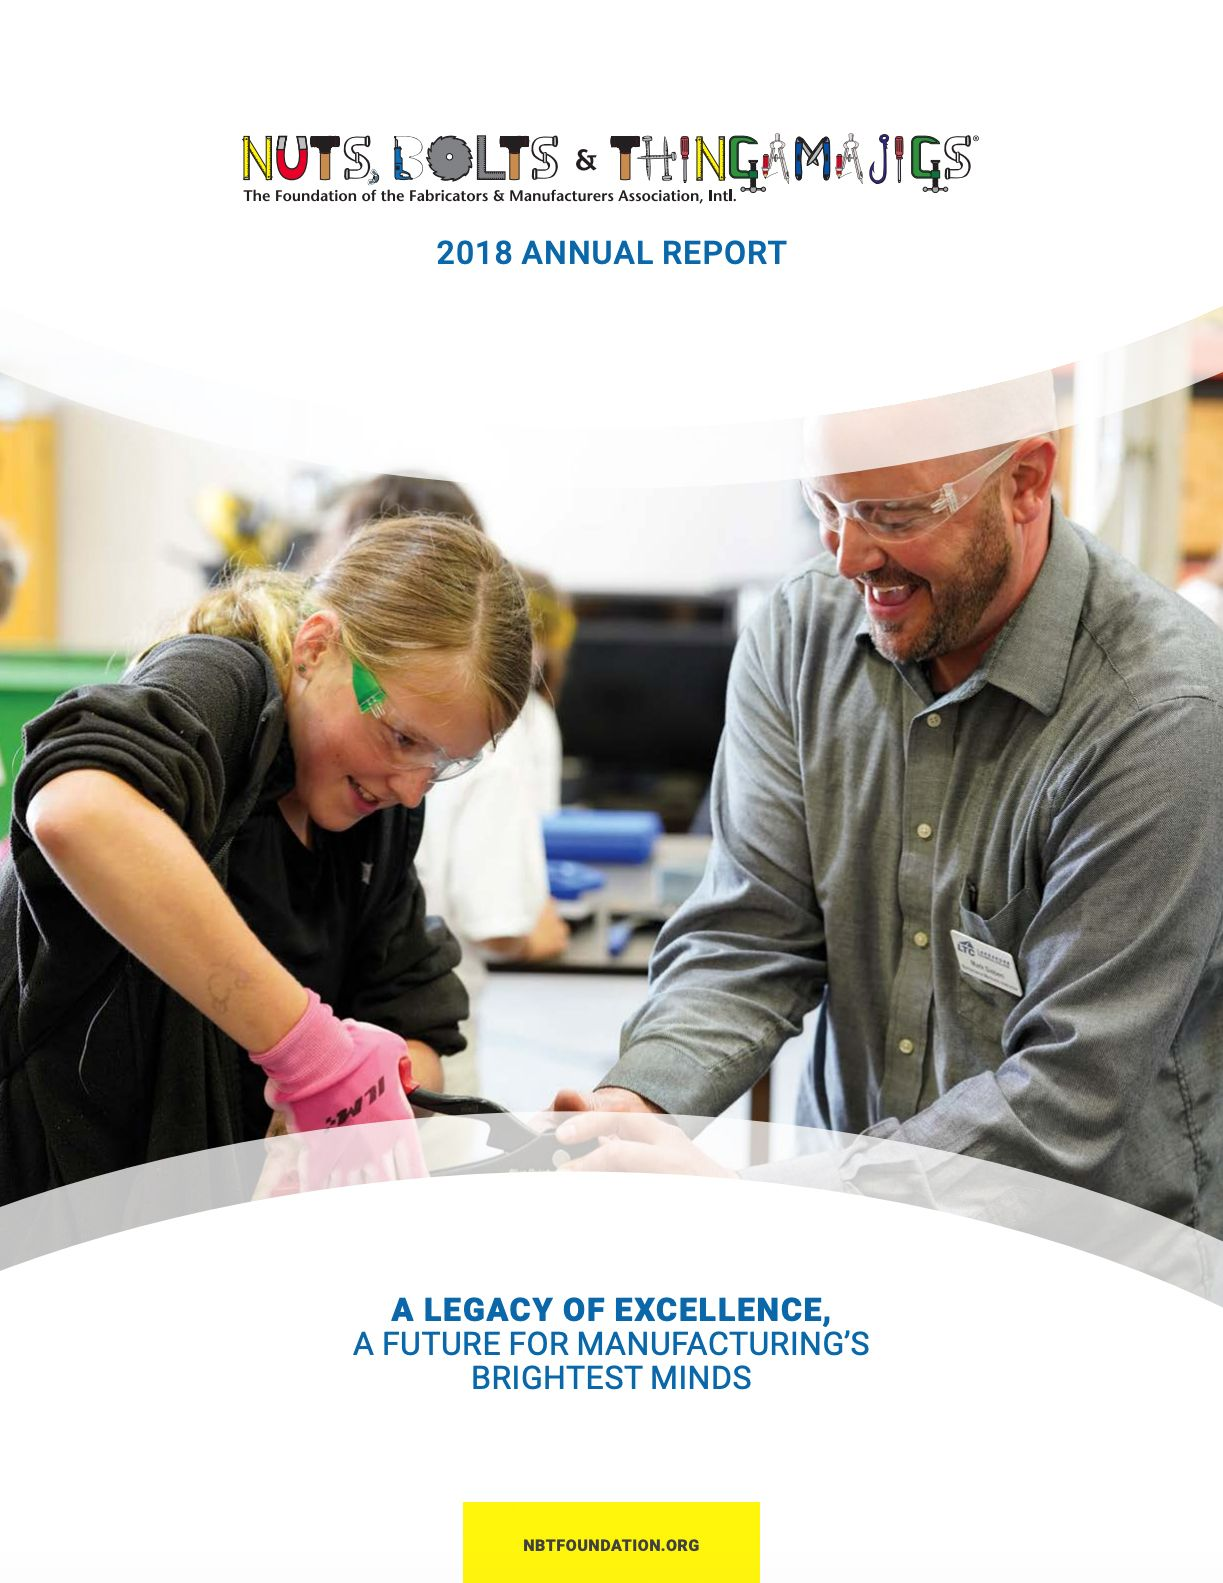 Download the Nuts, Bults & Thingamajigs annual report